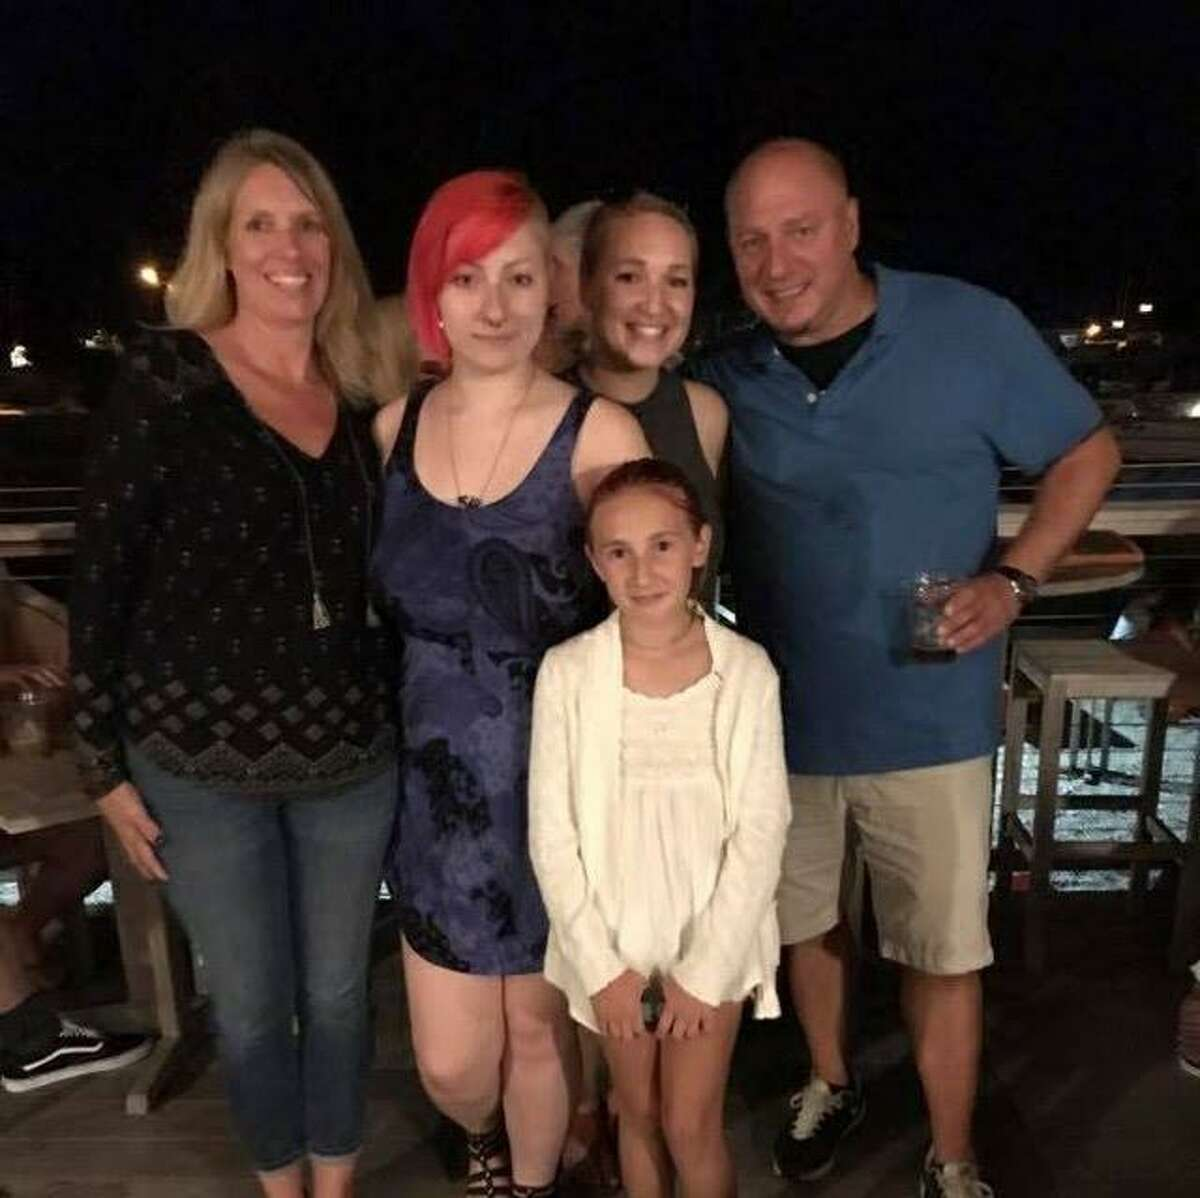 The Wilczynski family. Above, from left, Kristin, Hailey, Sydney (front), Alyssa (back), and Ed Wilczynski.